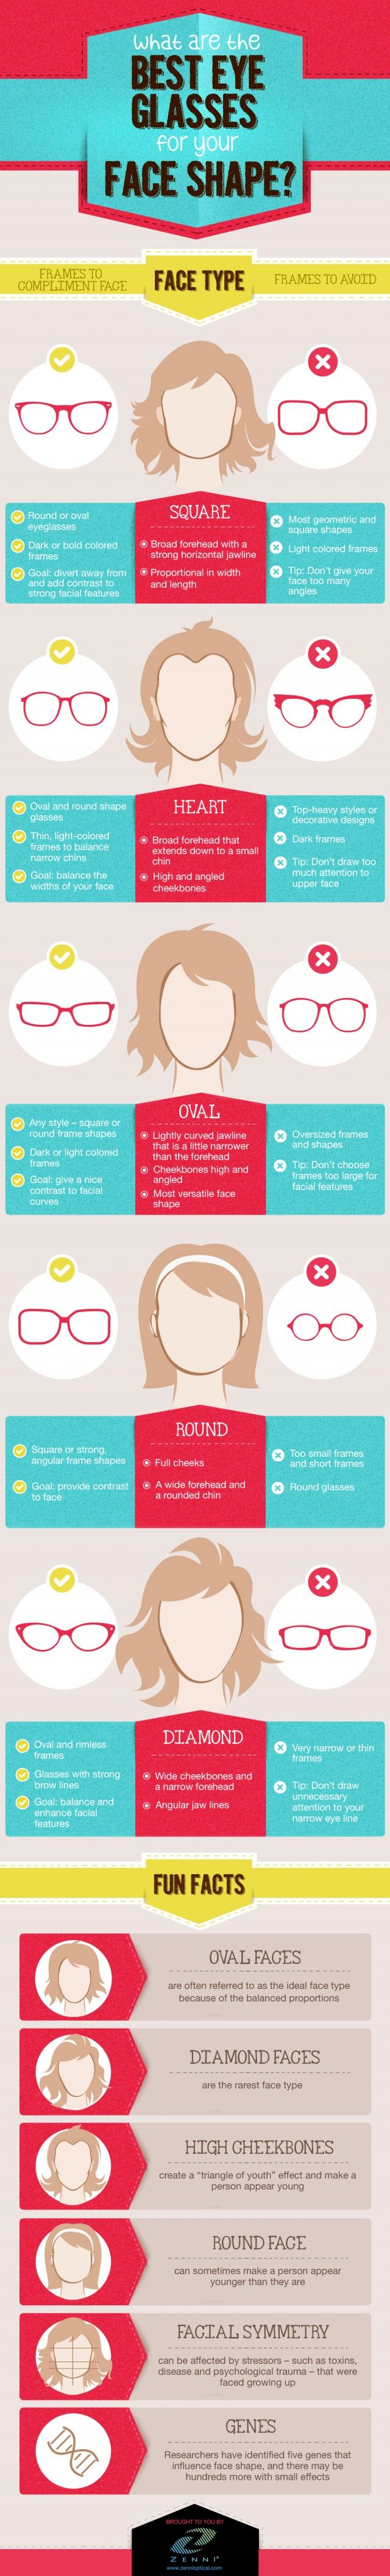 What are the best eye glasses for your face shape | its all about right choice